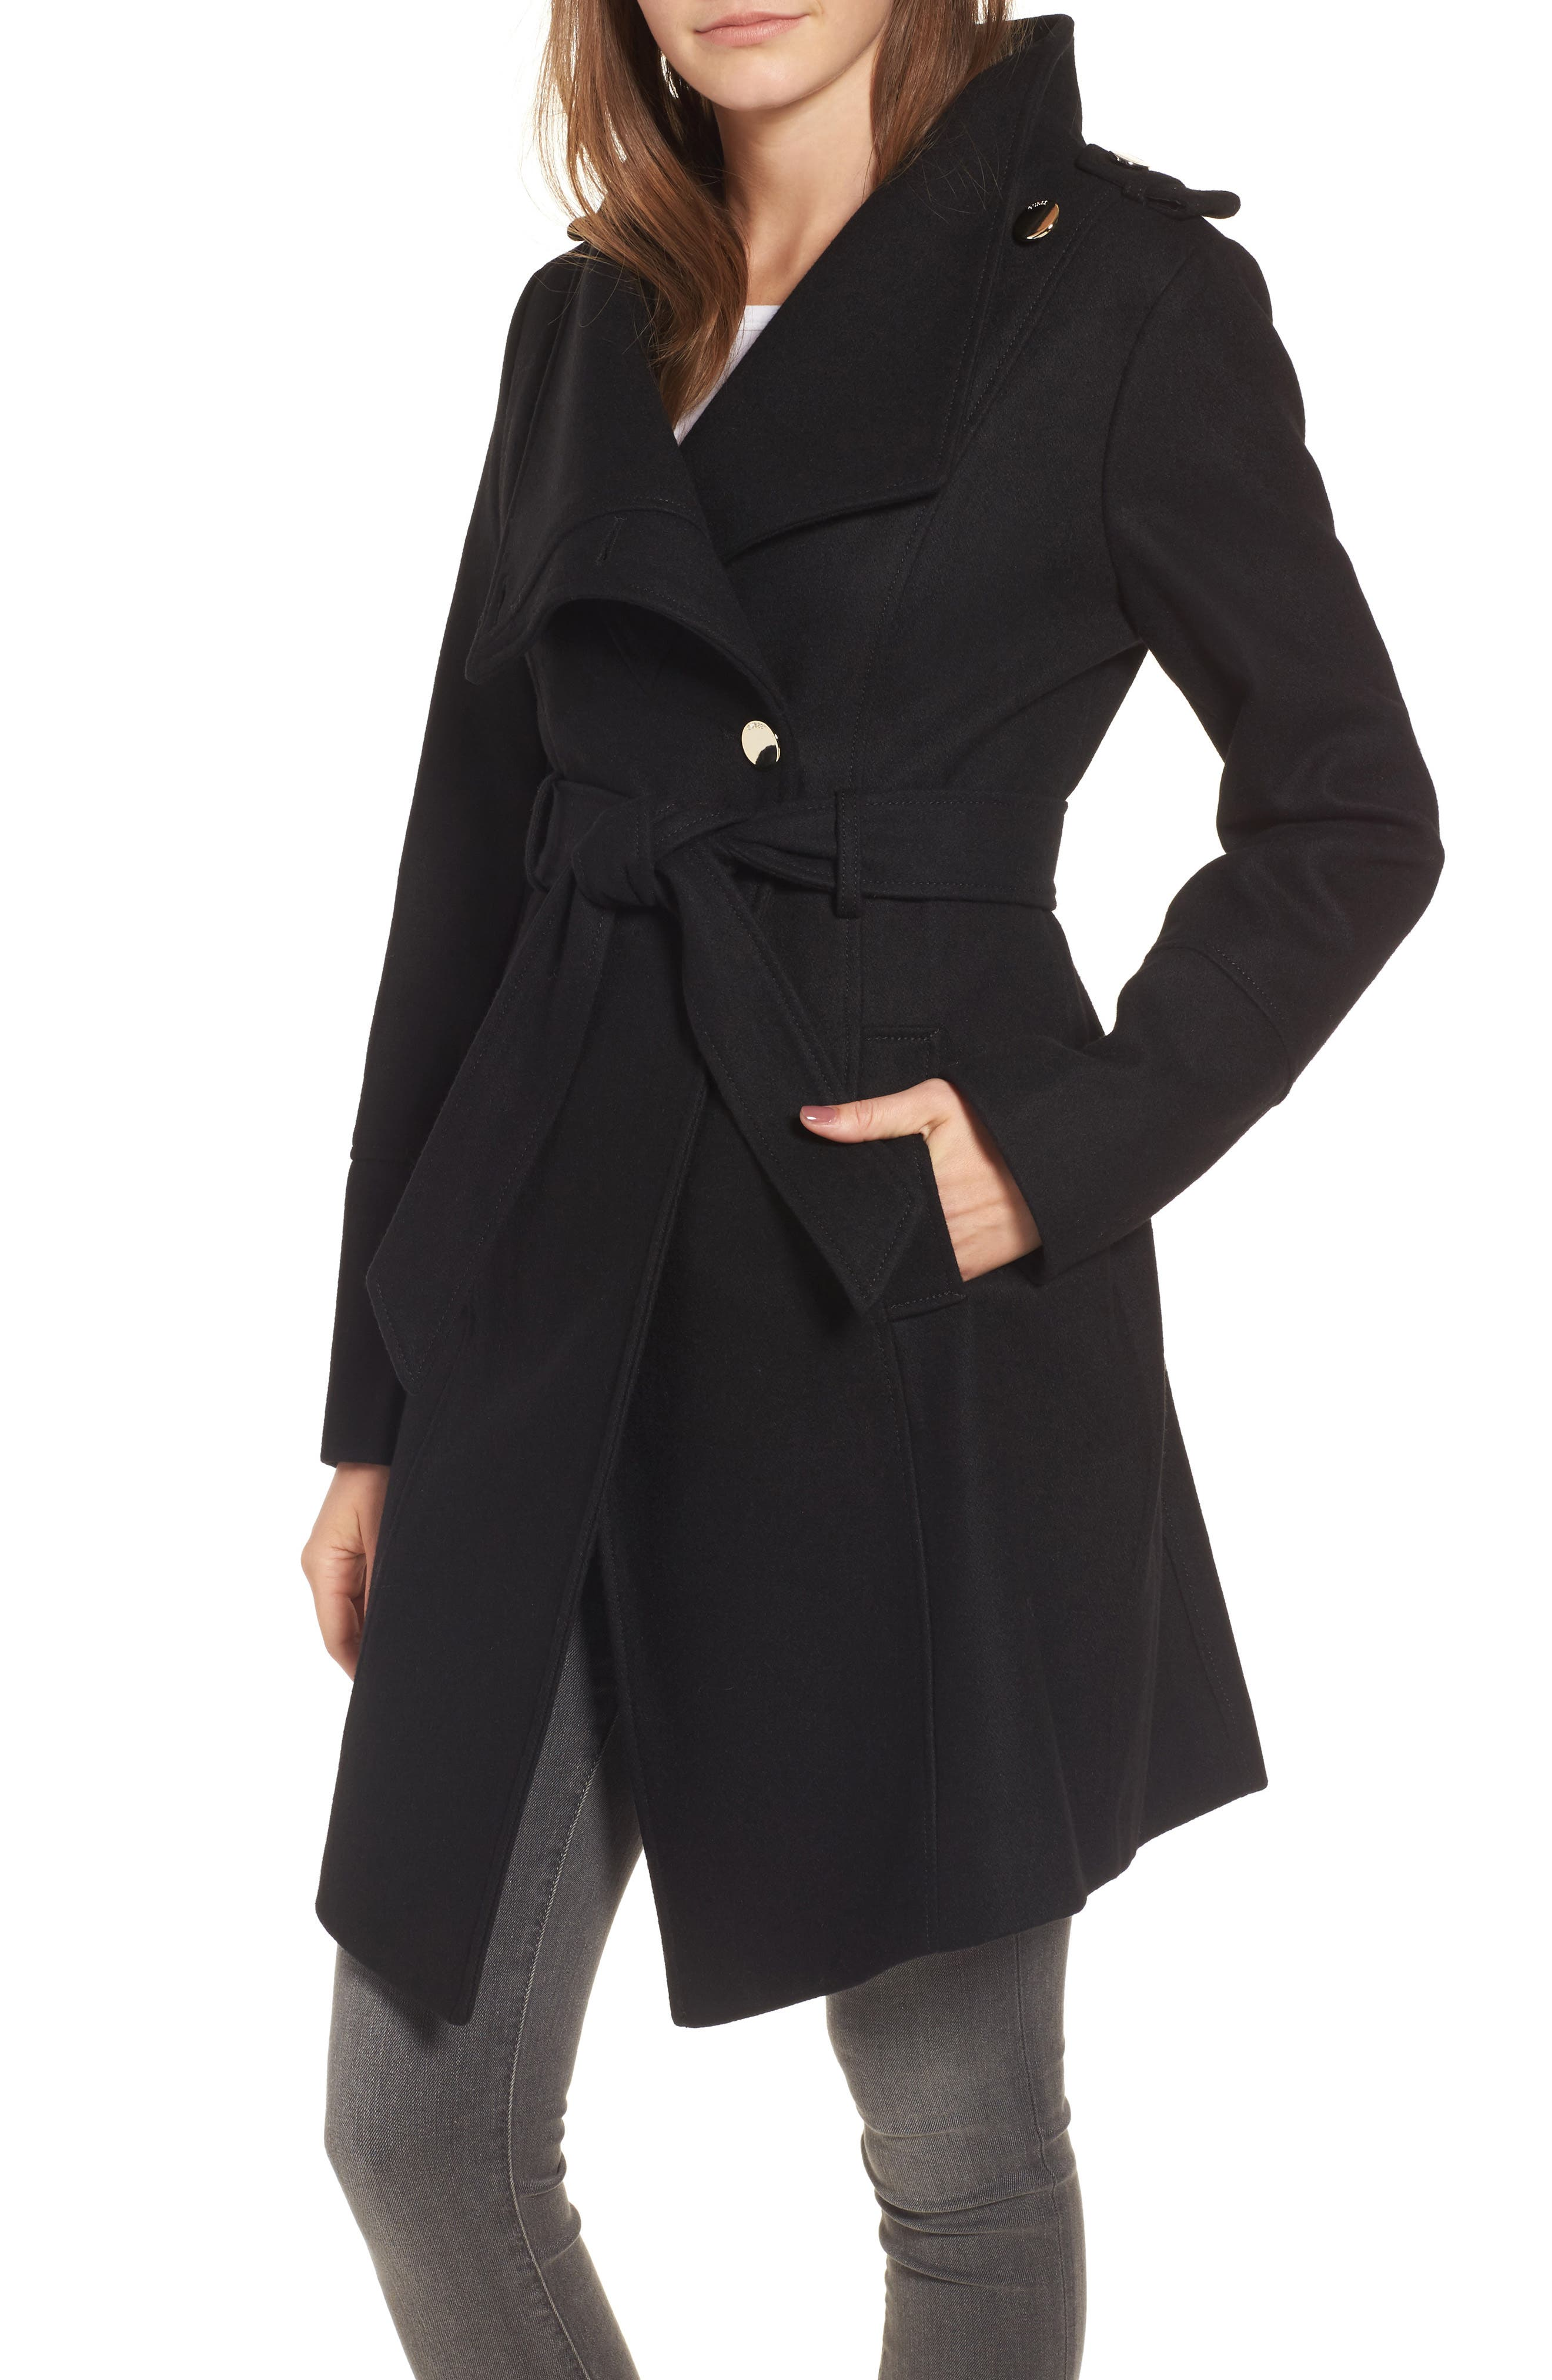 Wrap Trench Coat,                         Main,                         color, Black